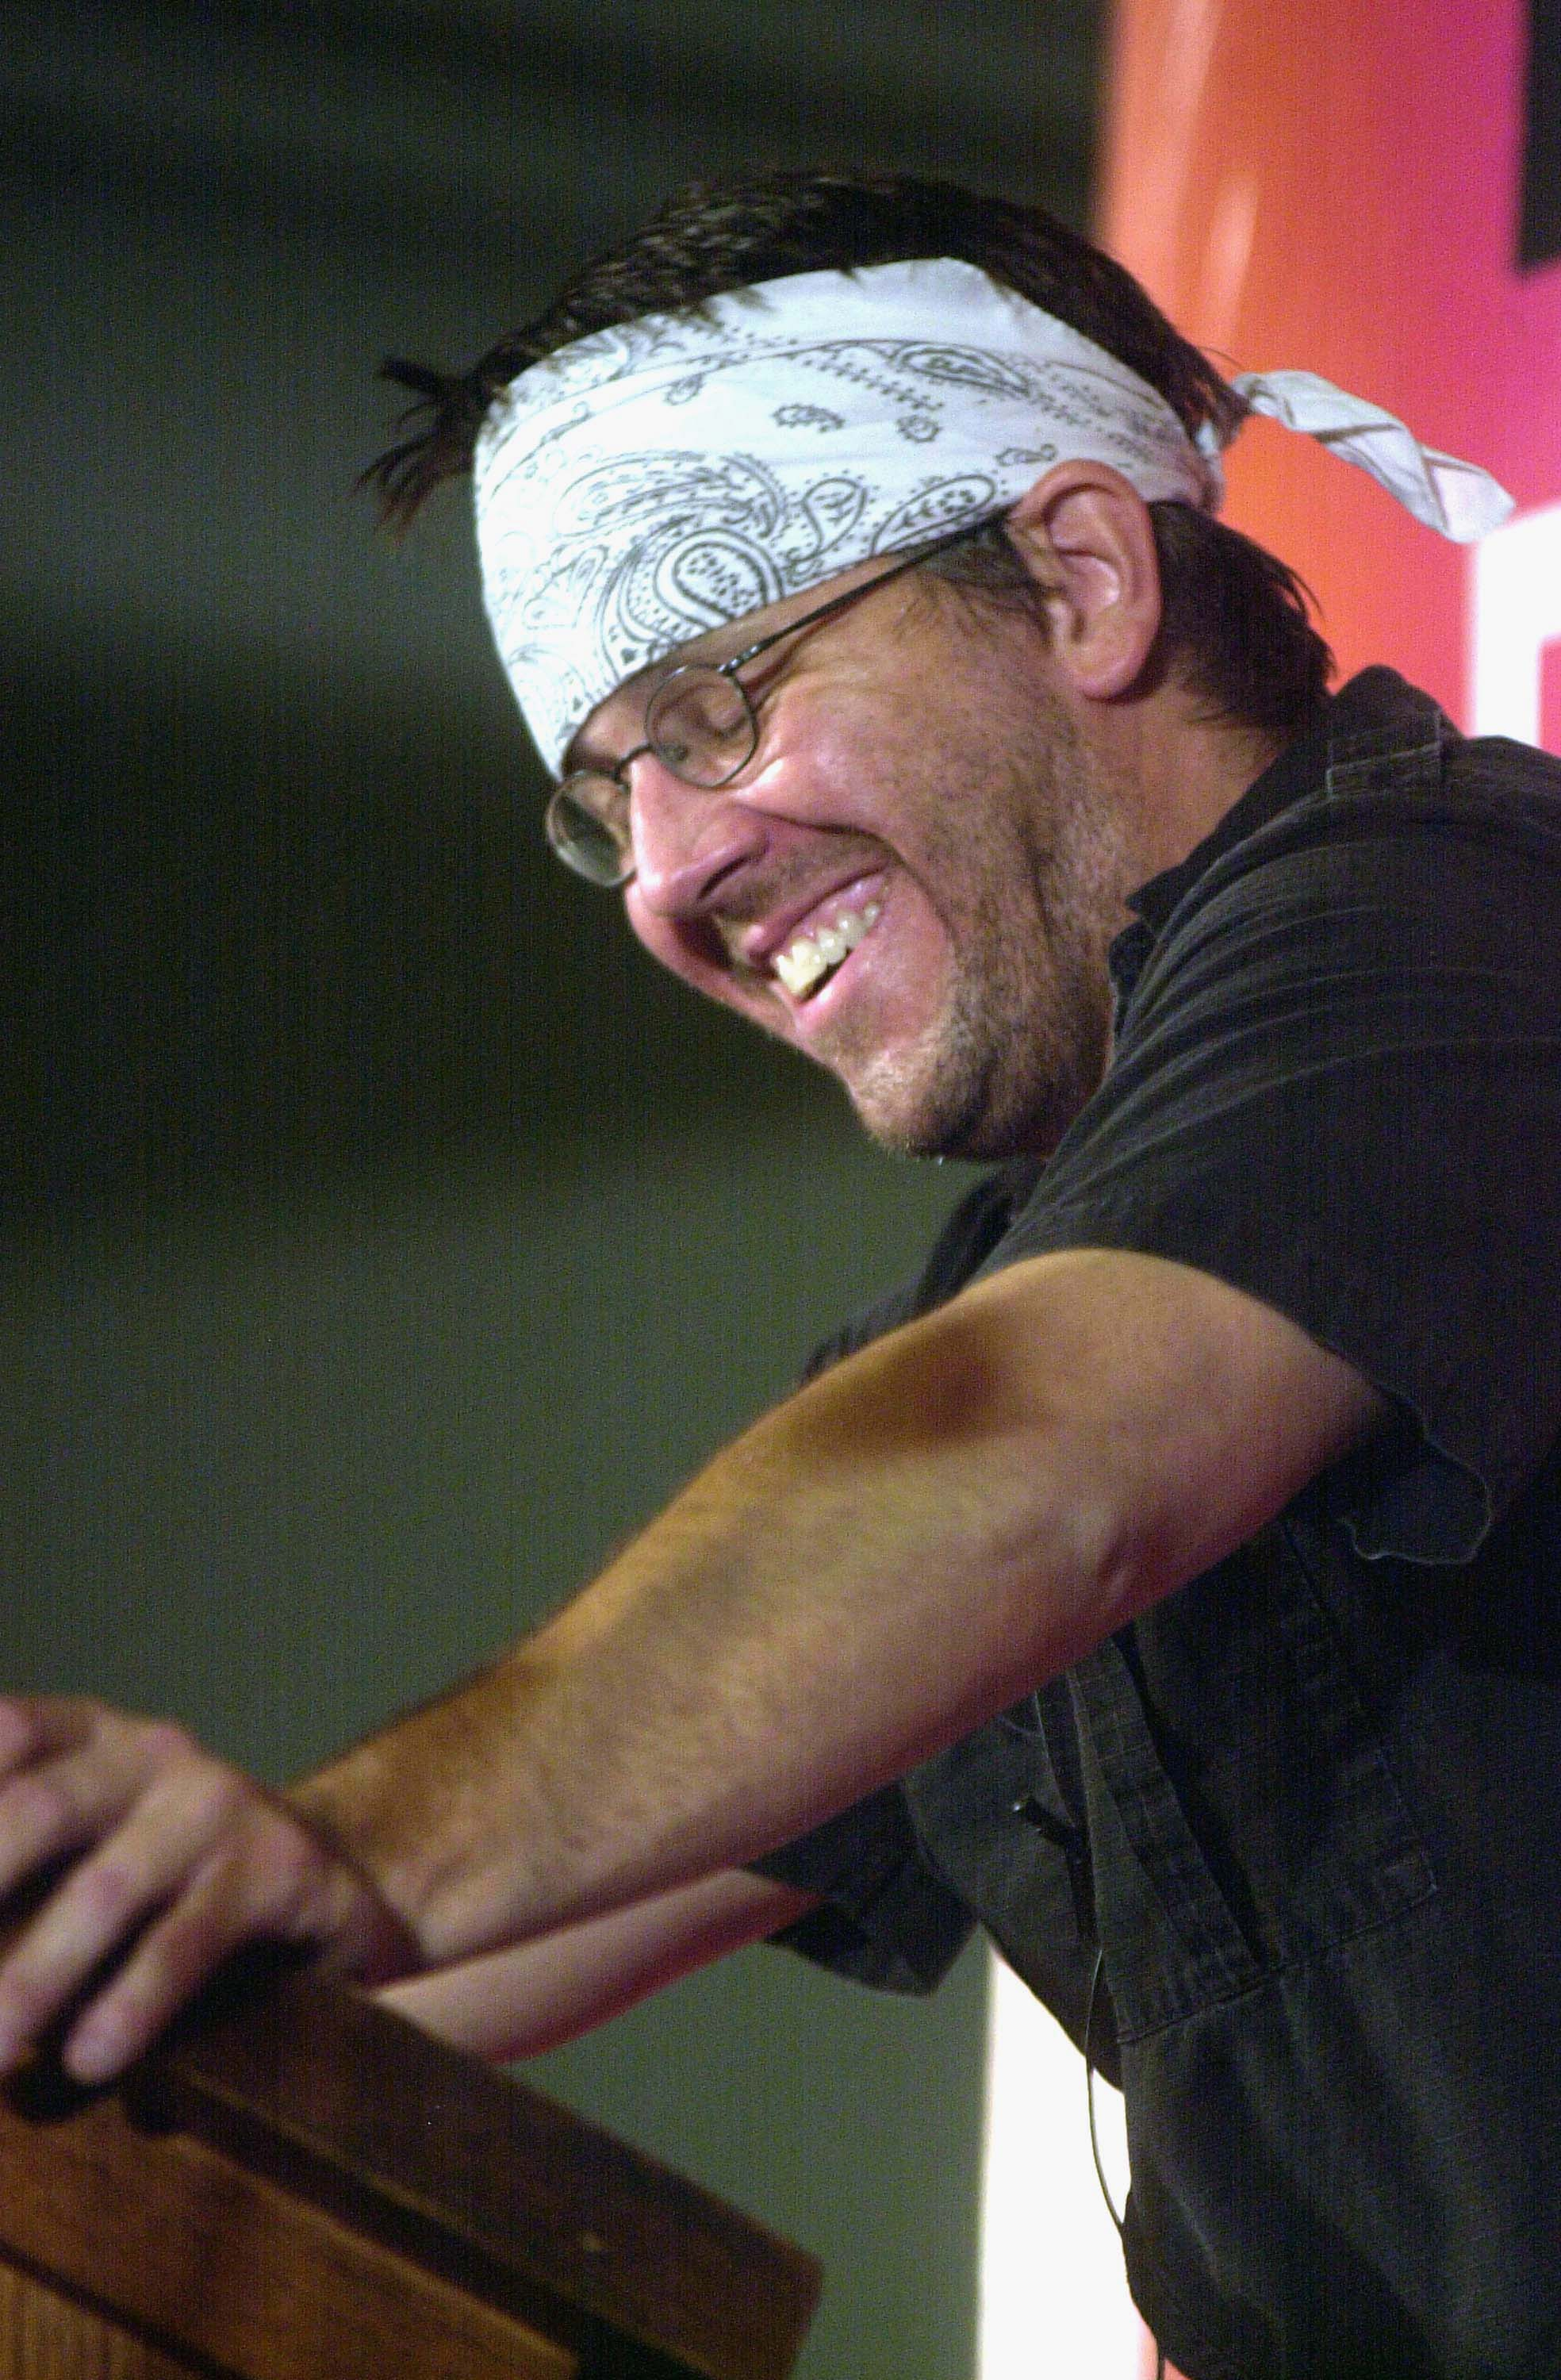 8 david foster wallace essays you can read online right now